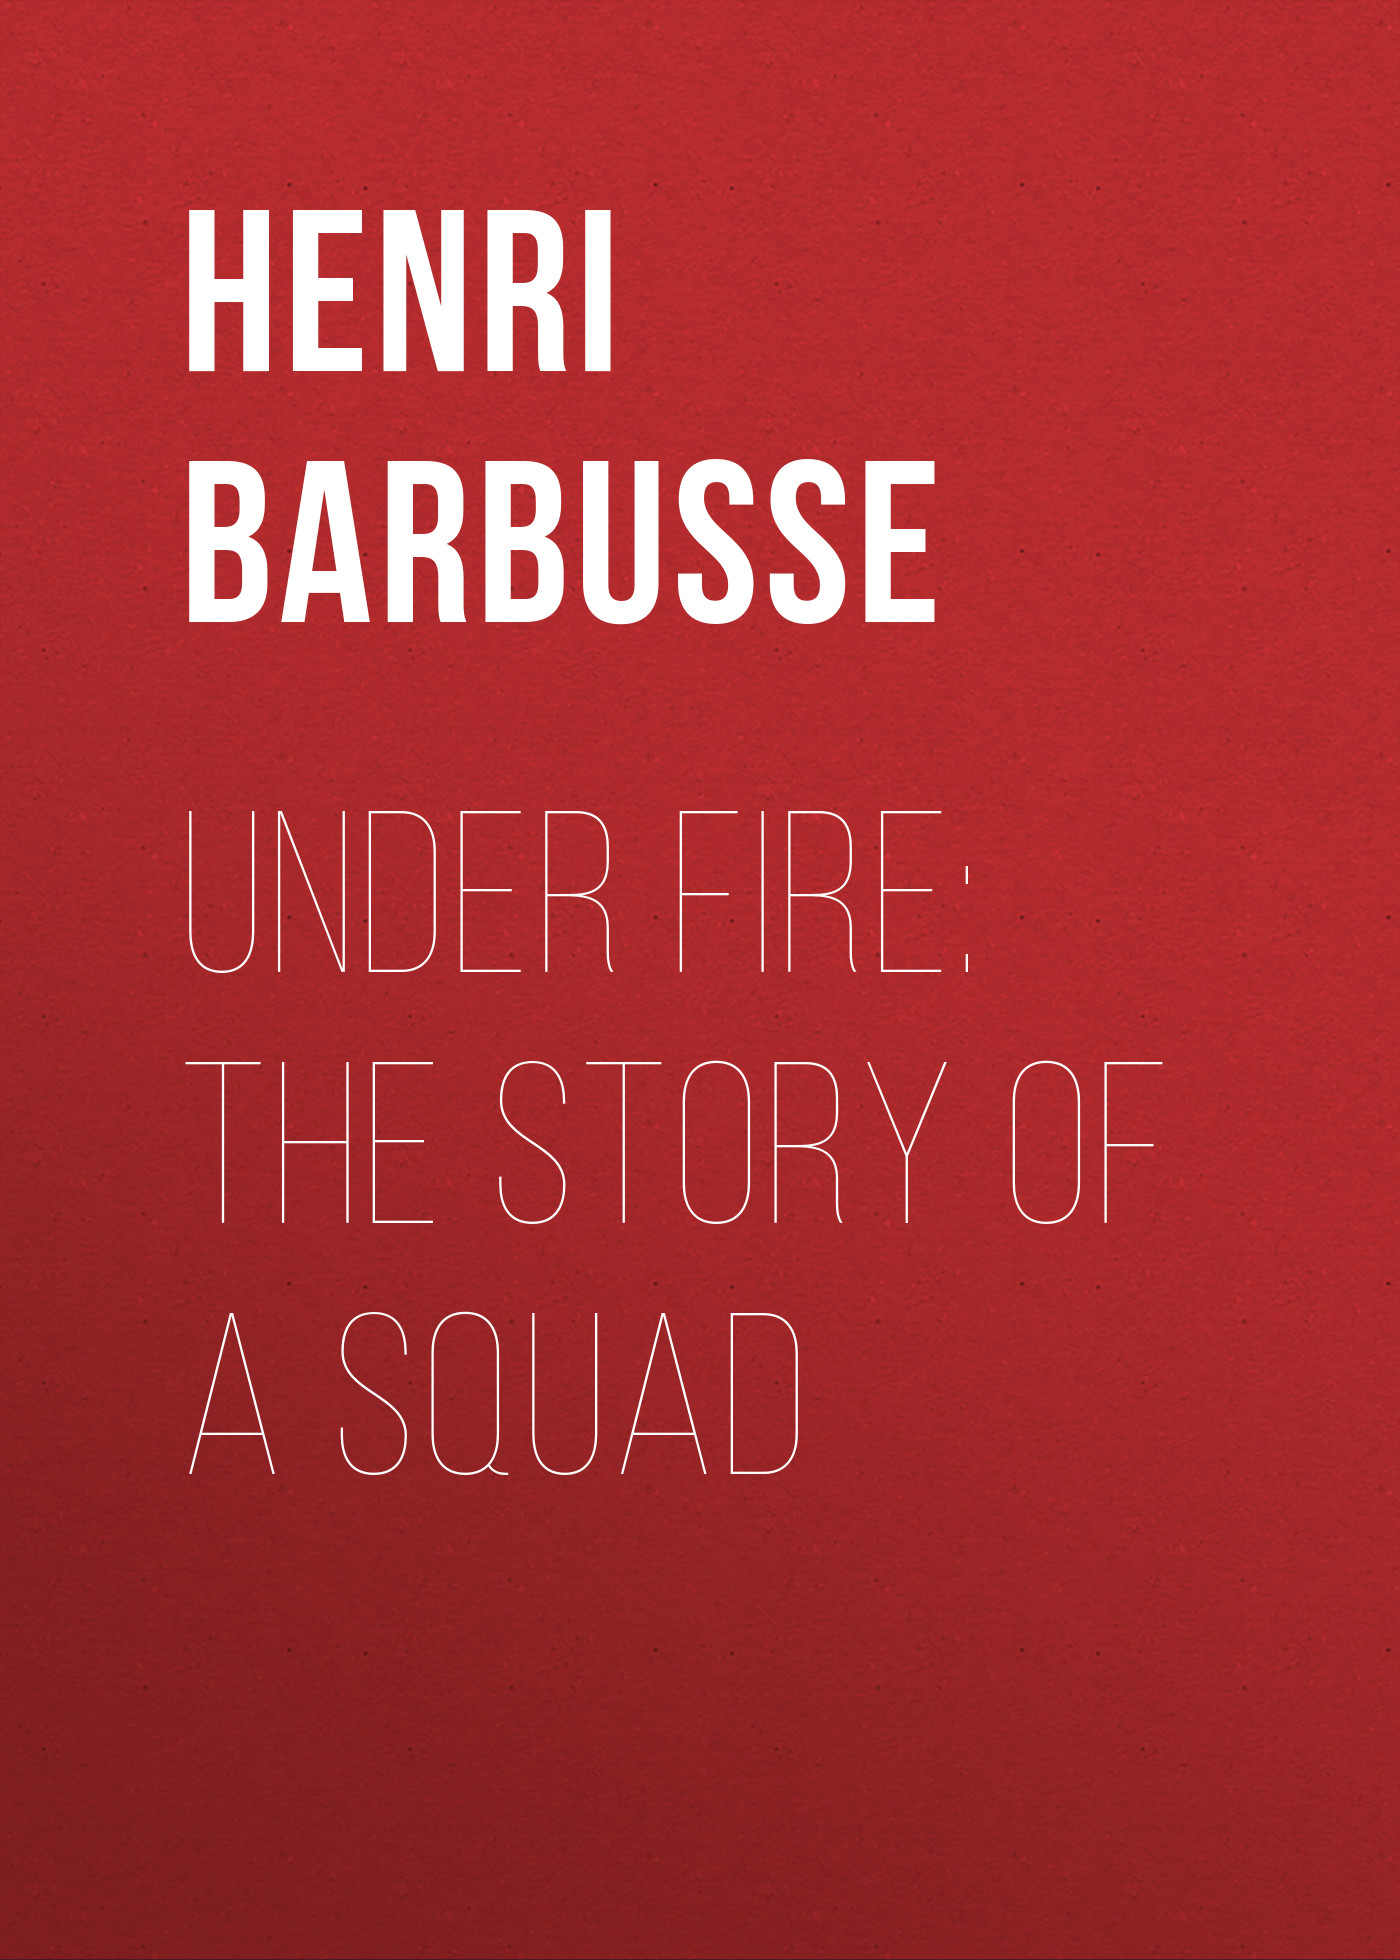 Henri Barbusse Under Fire: The Story of a Squad fire down under